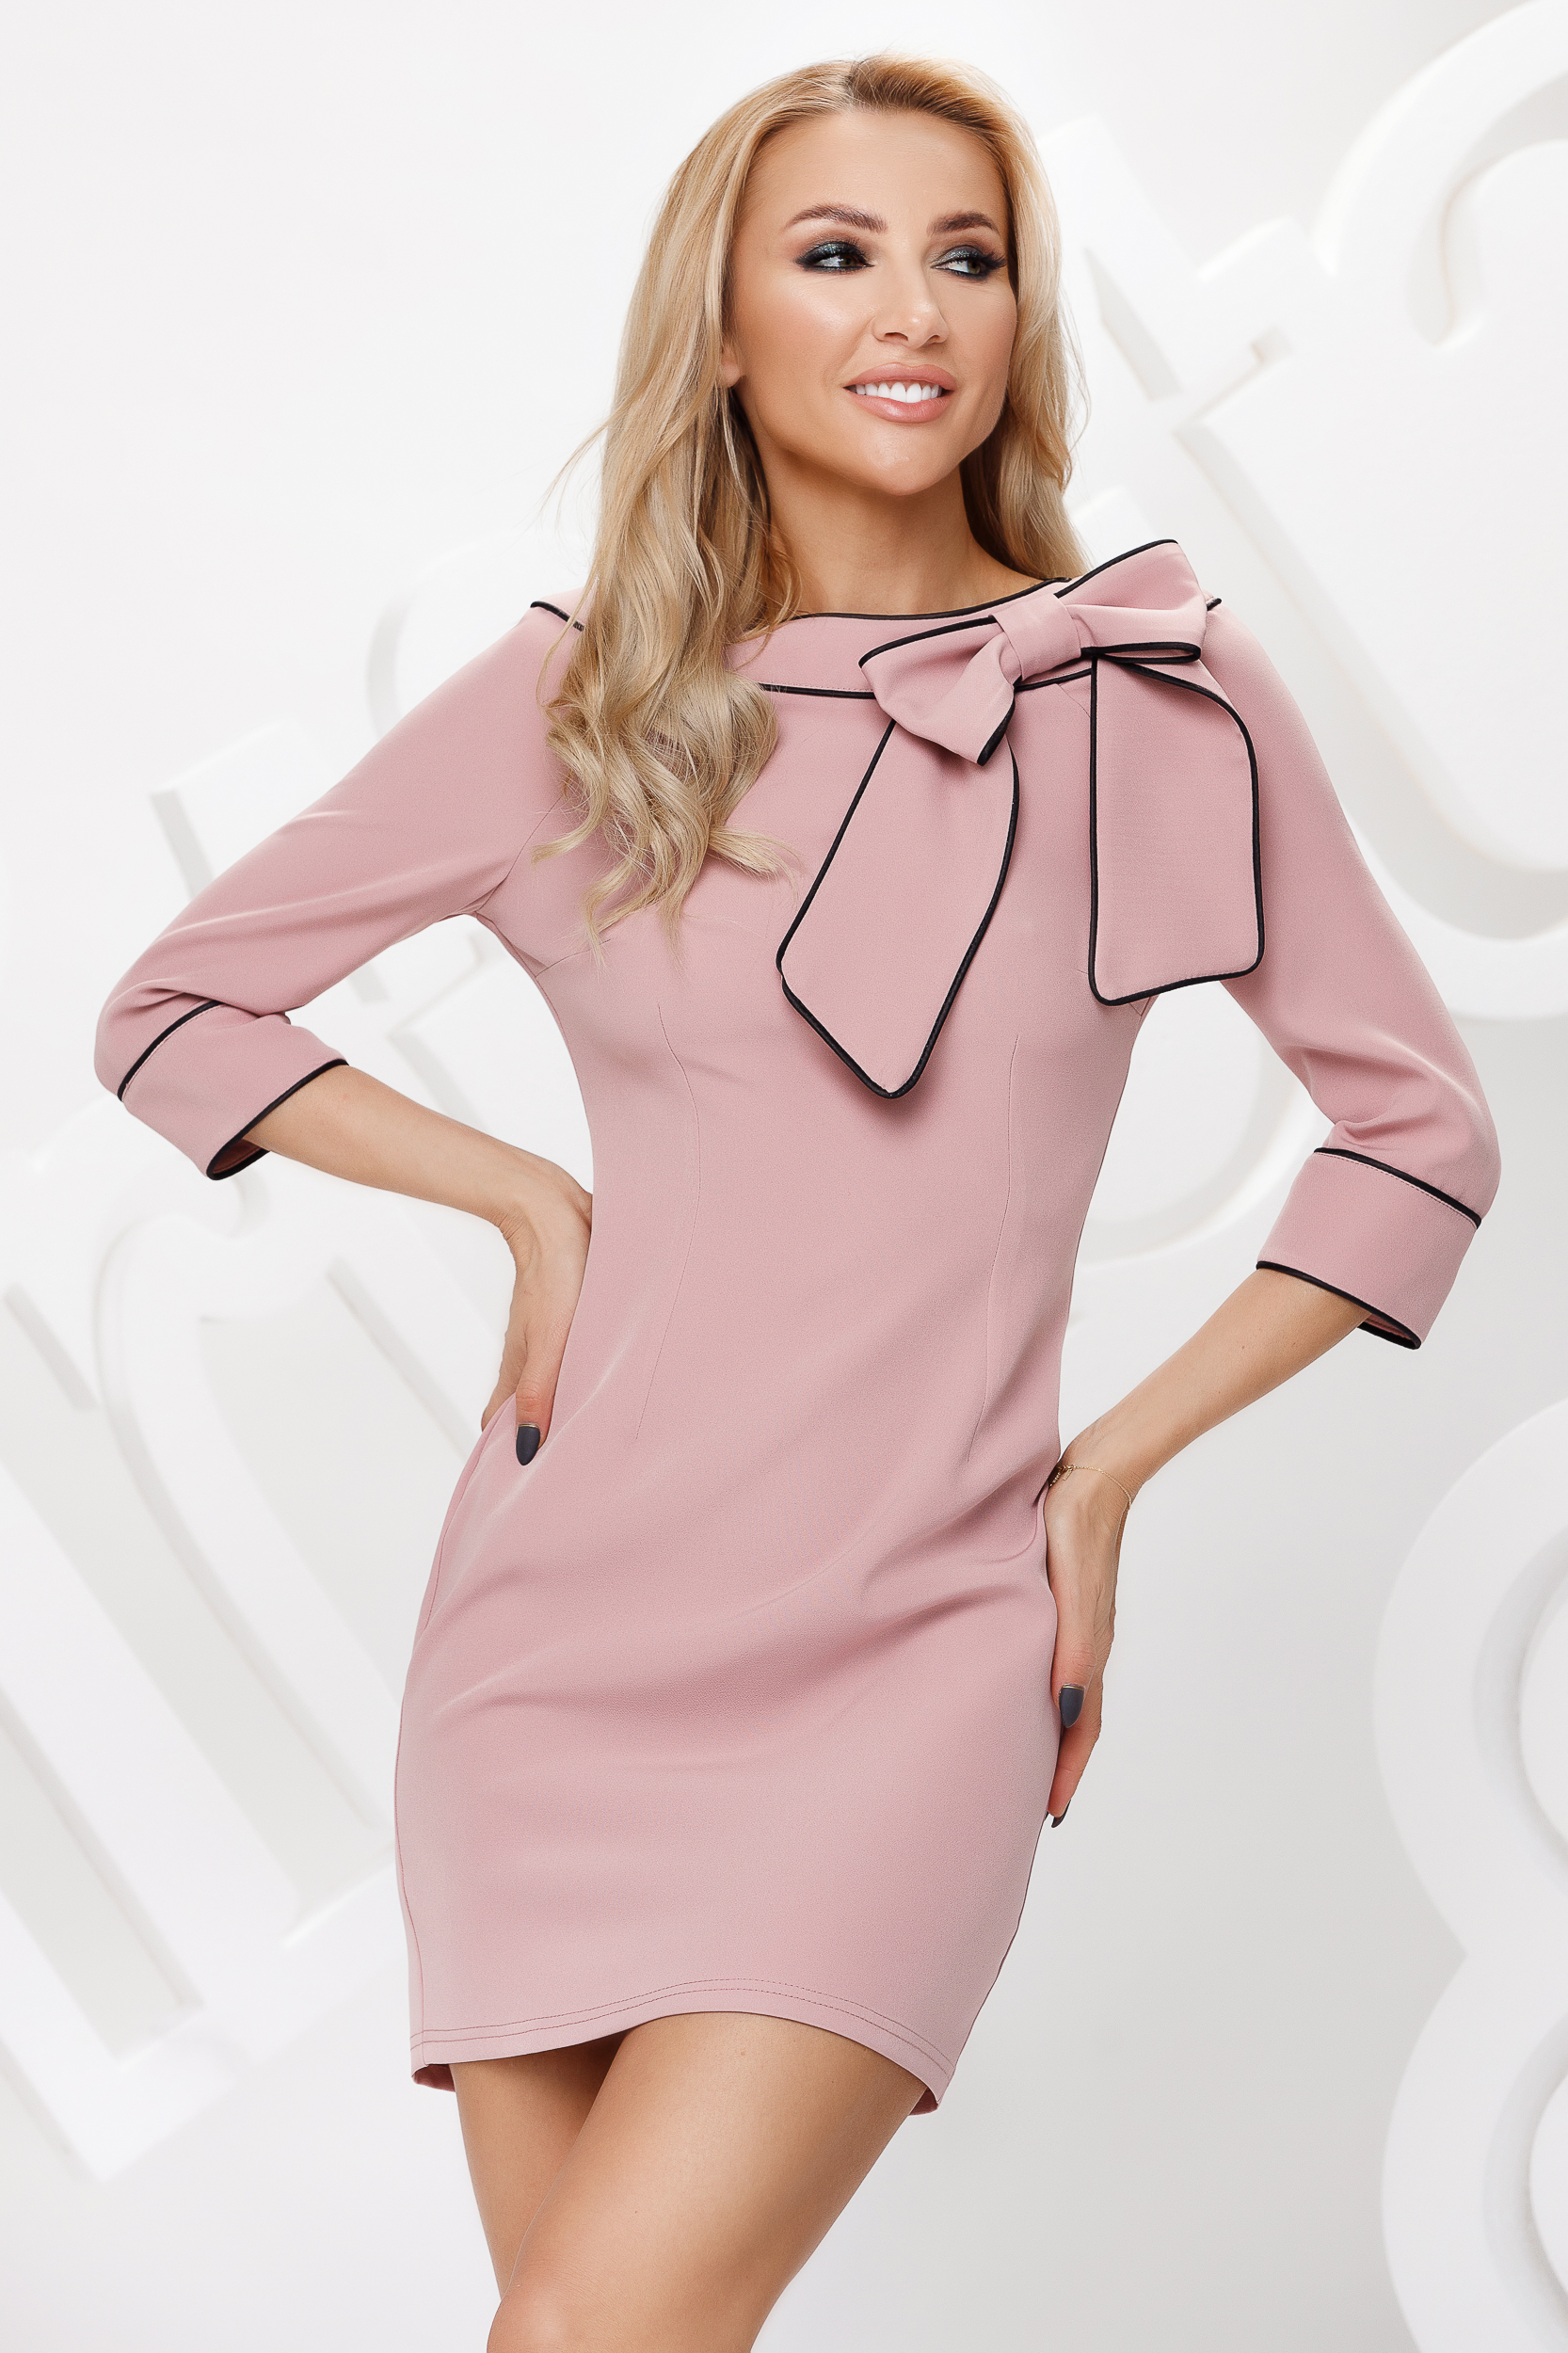 Lightpink dress pencil bow accessory double collar